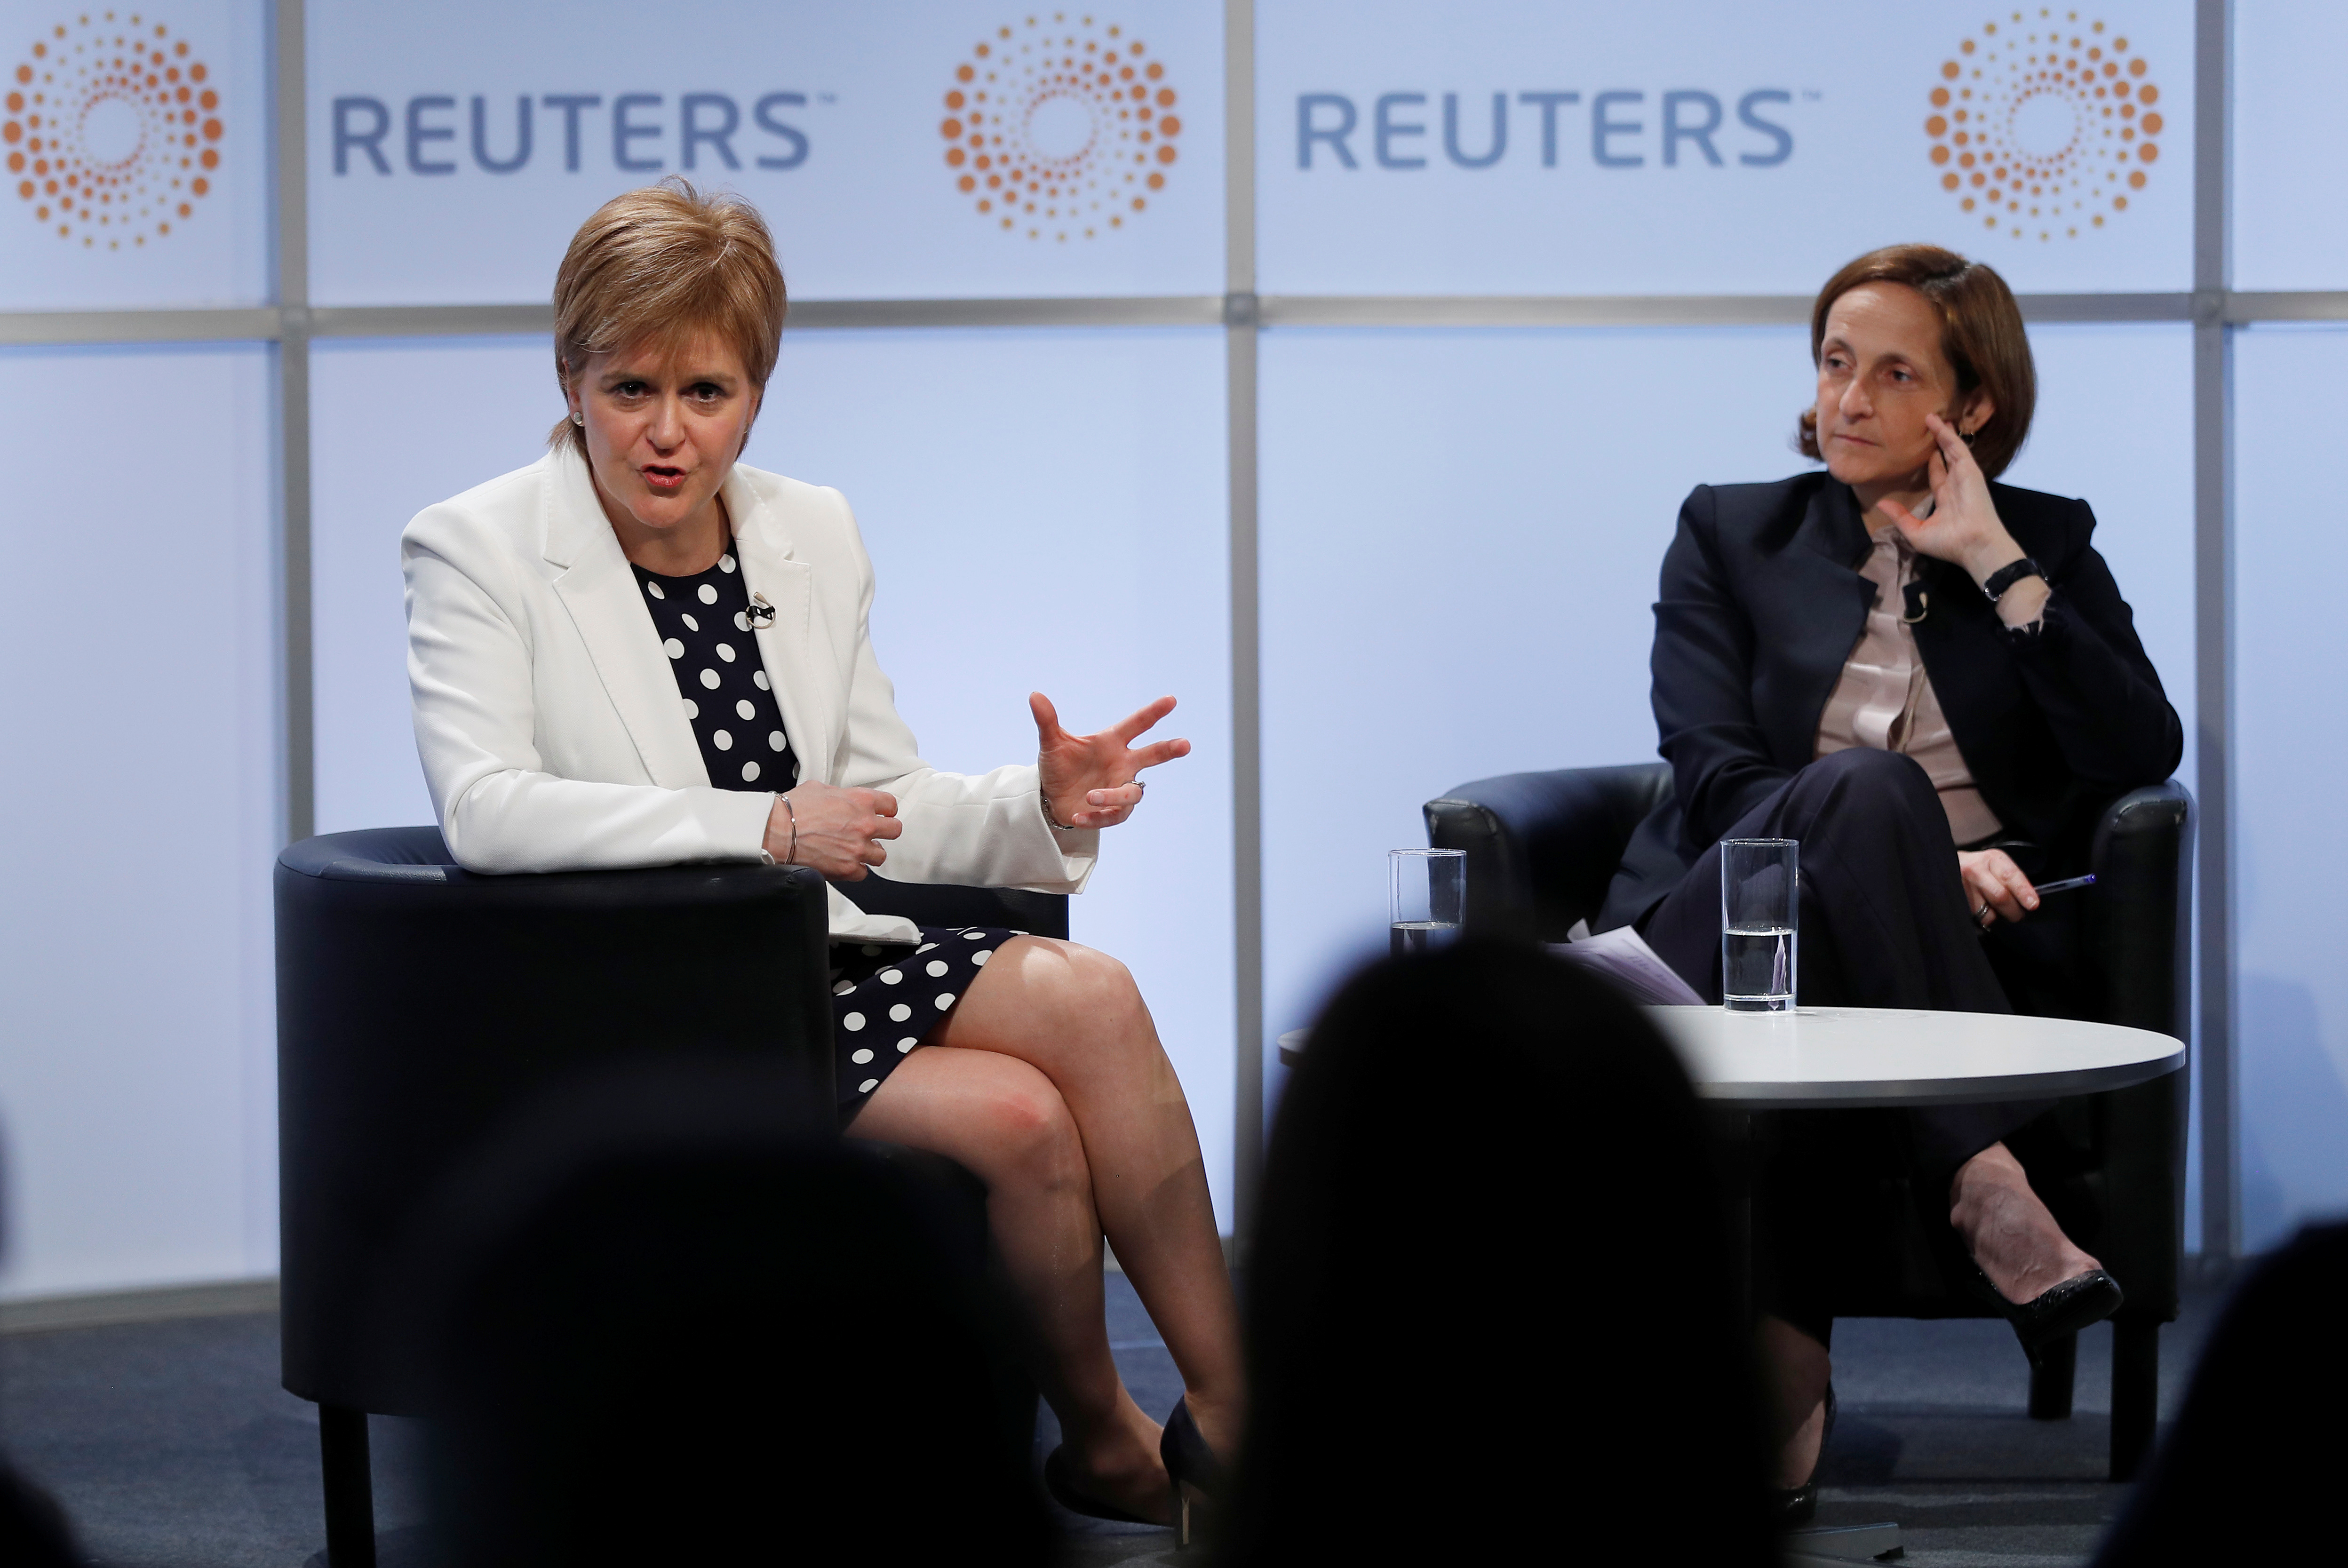 Scotland's First Minister, Nicola Sturgeon, speaks at a Reuters Newsmaker event, hosted by Reuters Global Editor, Alessandra Galloni, in London, Britain May 14, 2018. REUTERS/Peter Nicholls